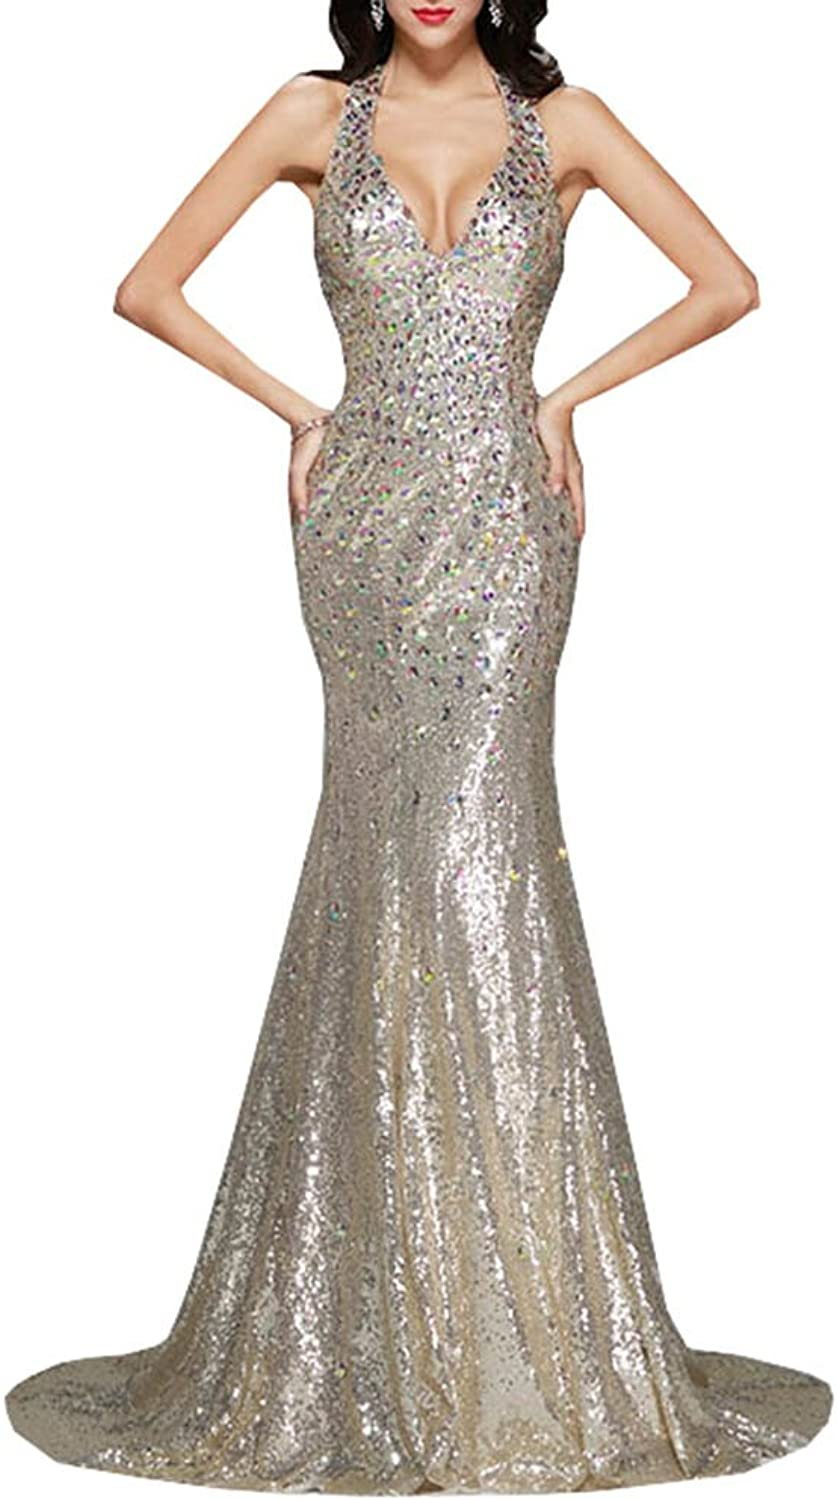 Lavaring Women's Deep V Neck Crystal Sequins Tulle Mermaid Long Evening Dress